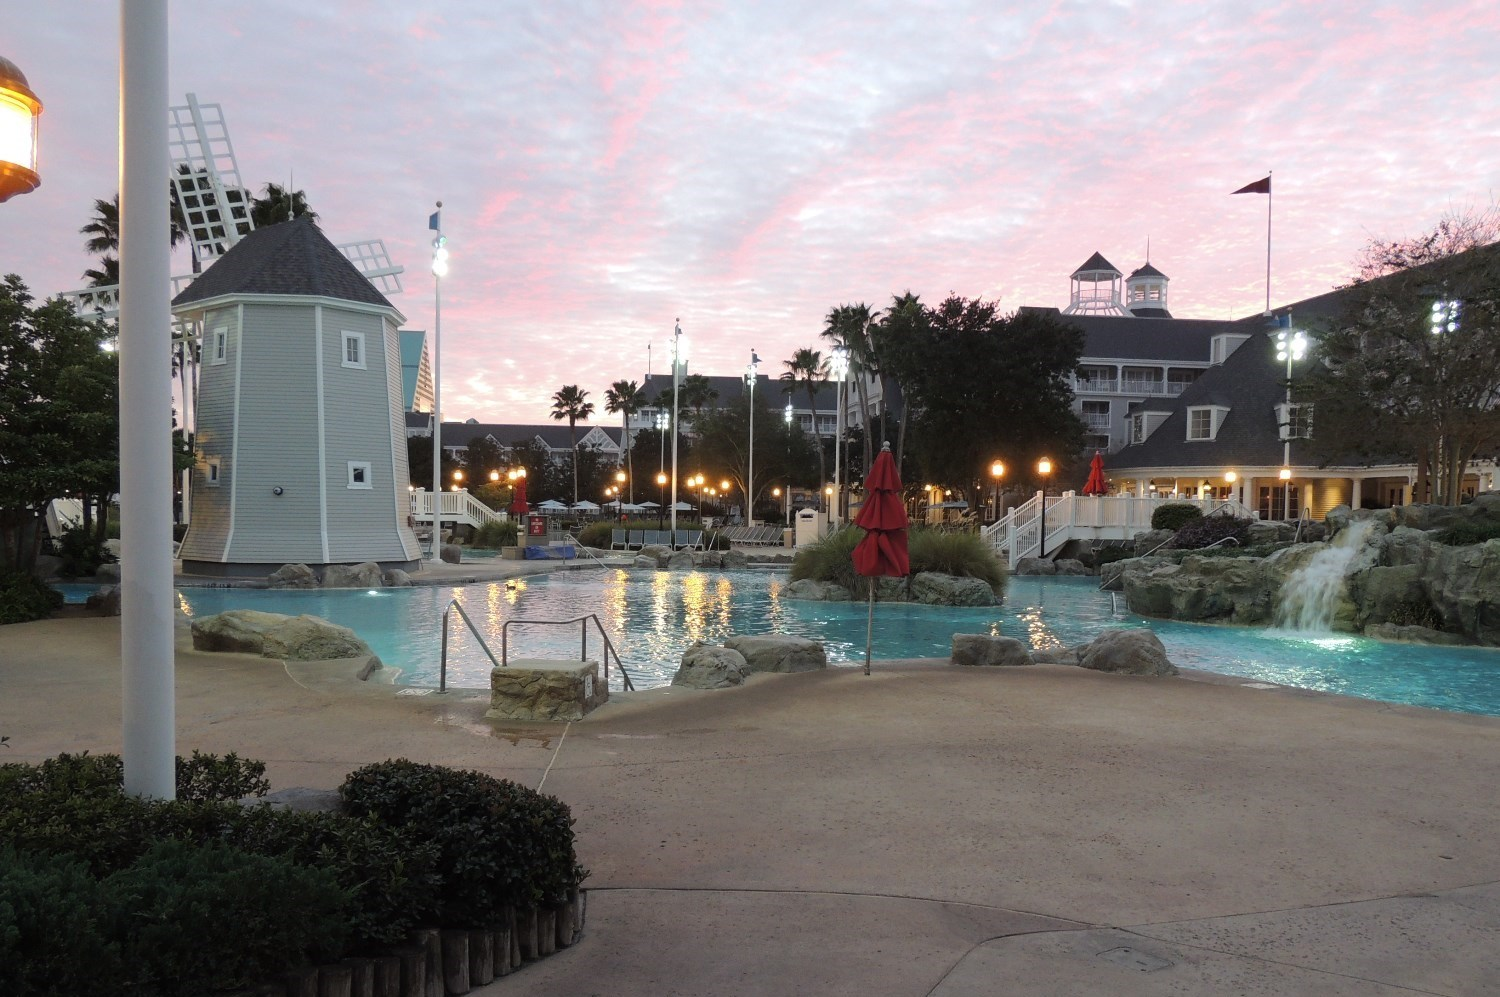 Disney's Yacht Club Storm Along Bay Feature Pool in the evening